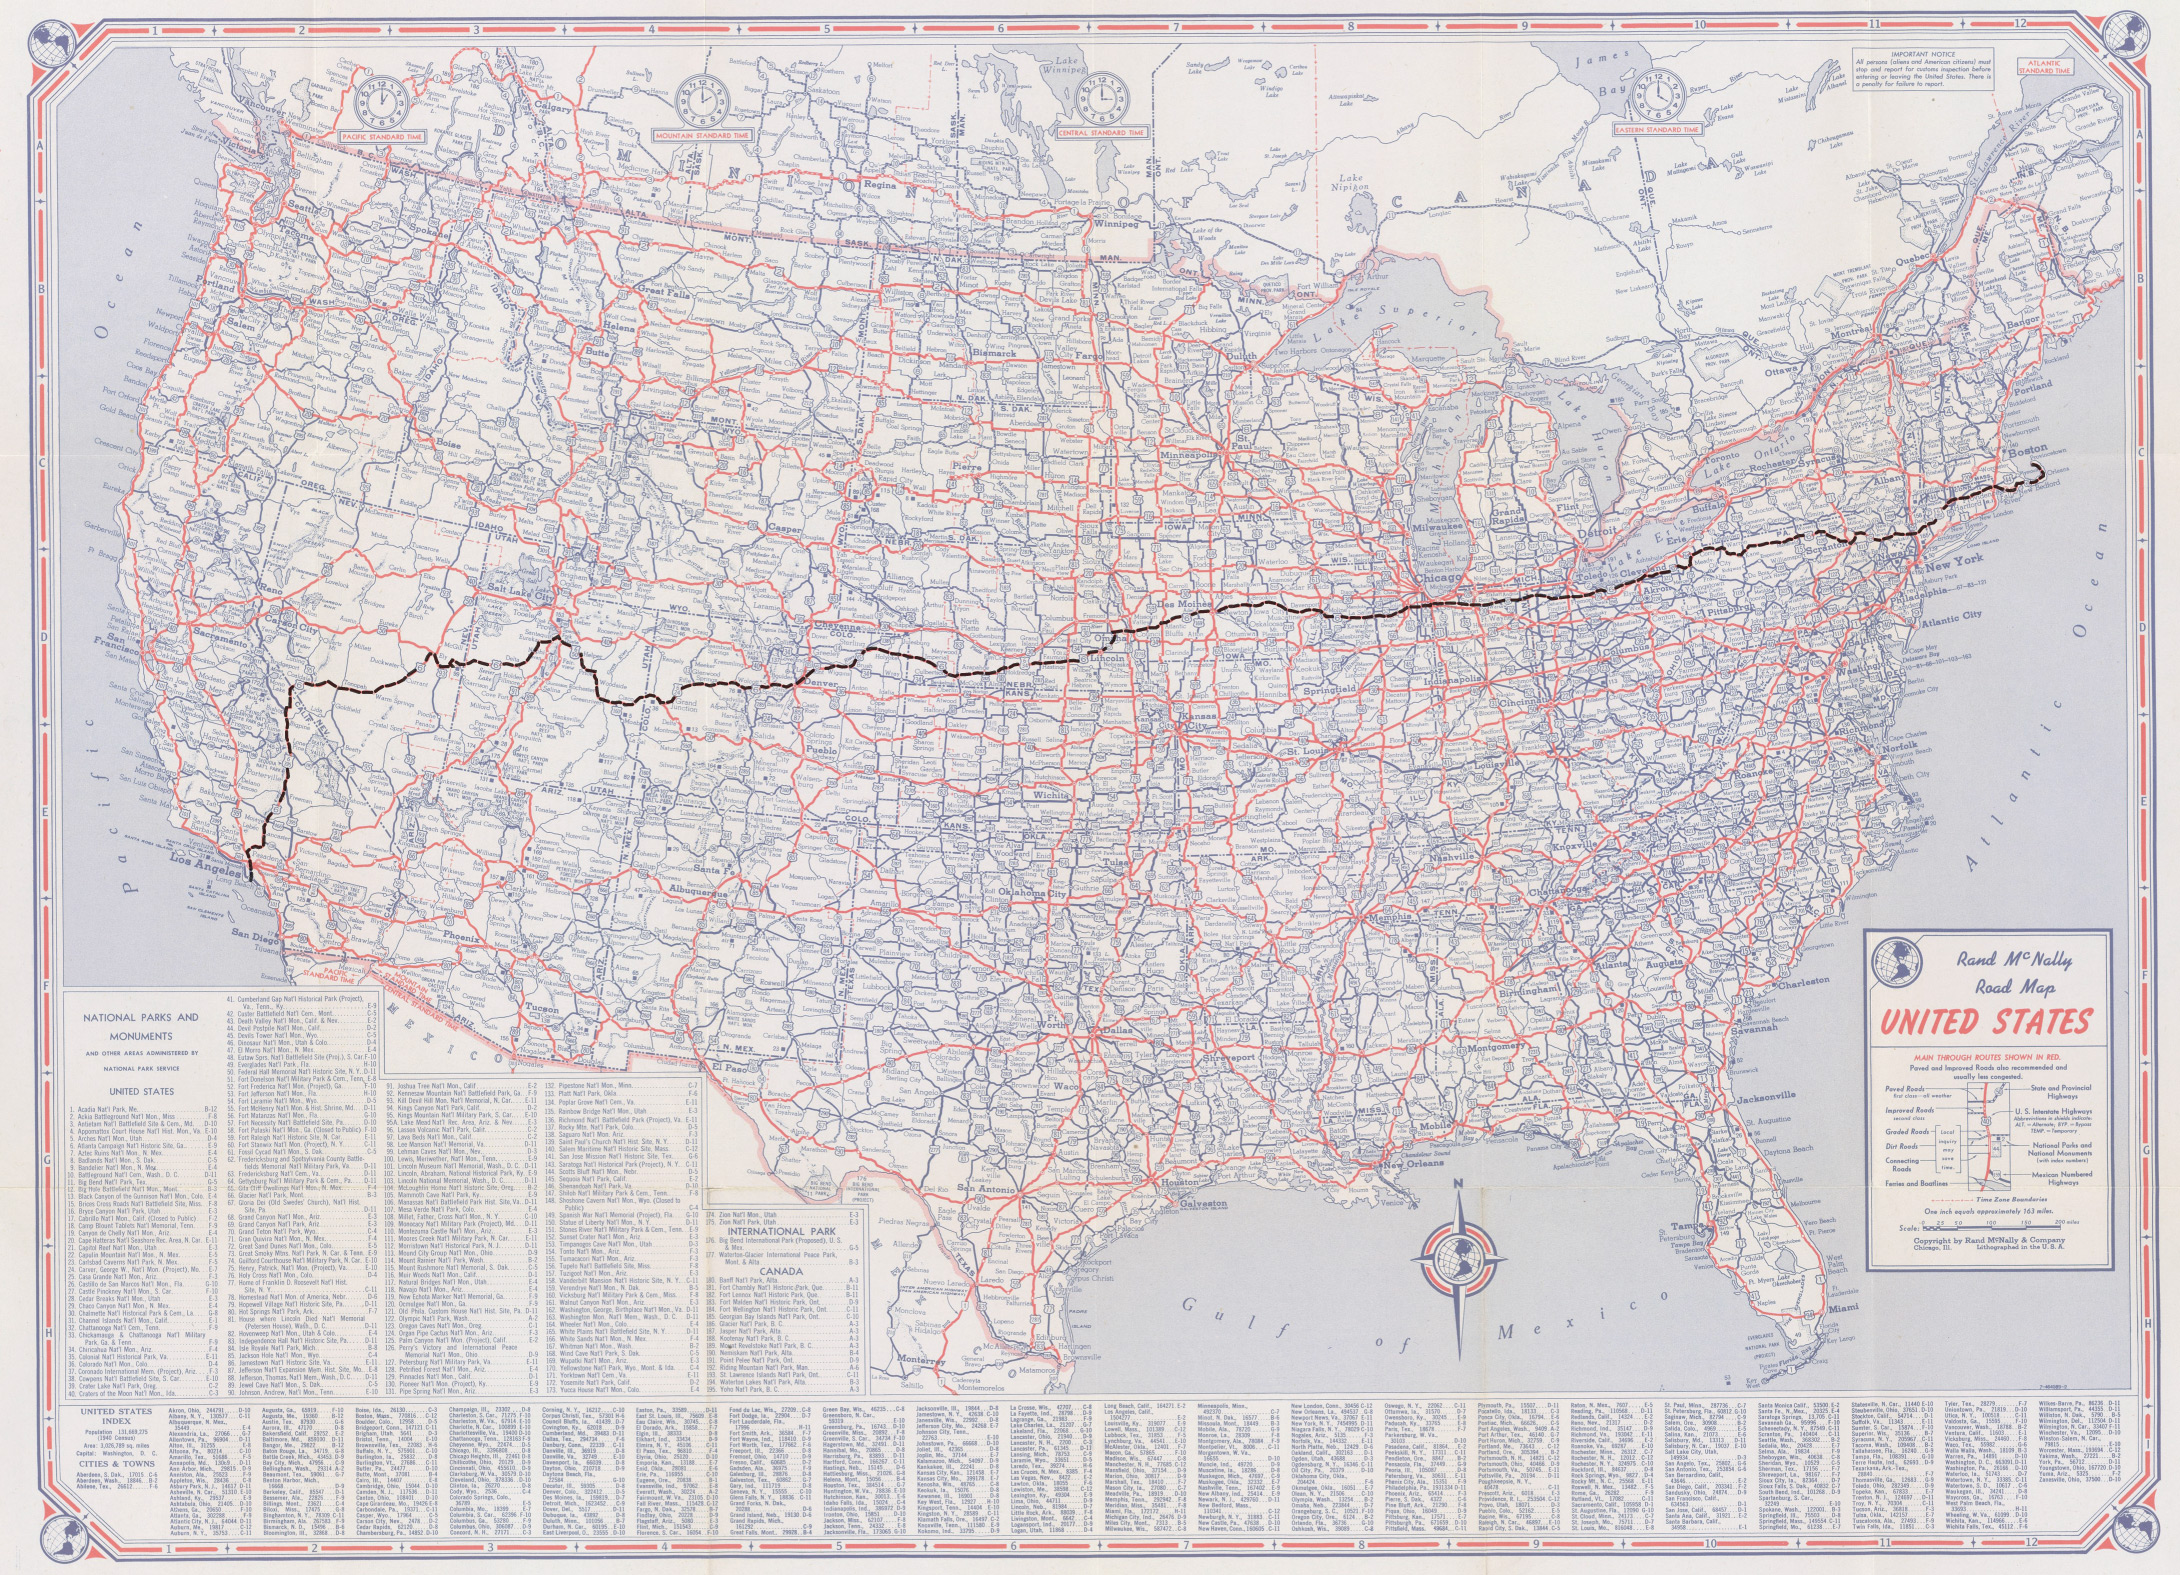 Route 6 Walk Rand Mcnally 1947 Road Maps Us Route 6 - Road-map-of-the-us